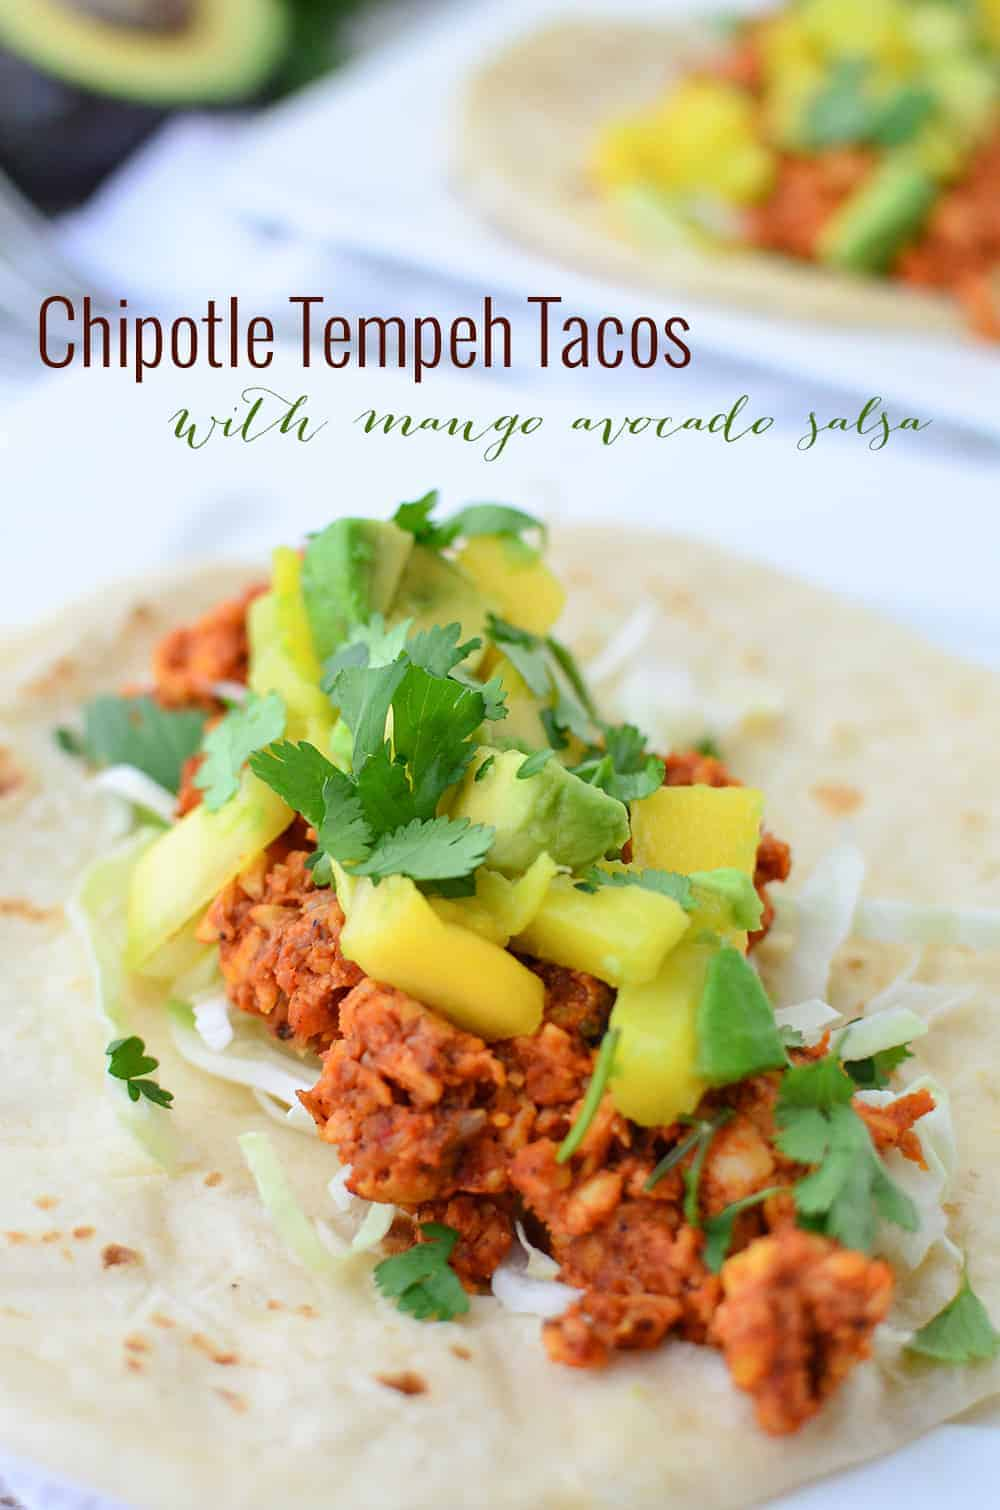 Chipotle Tempeh Tacos - Delicious Knowledge